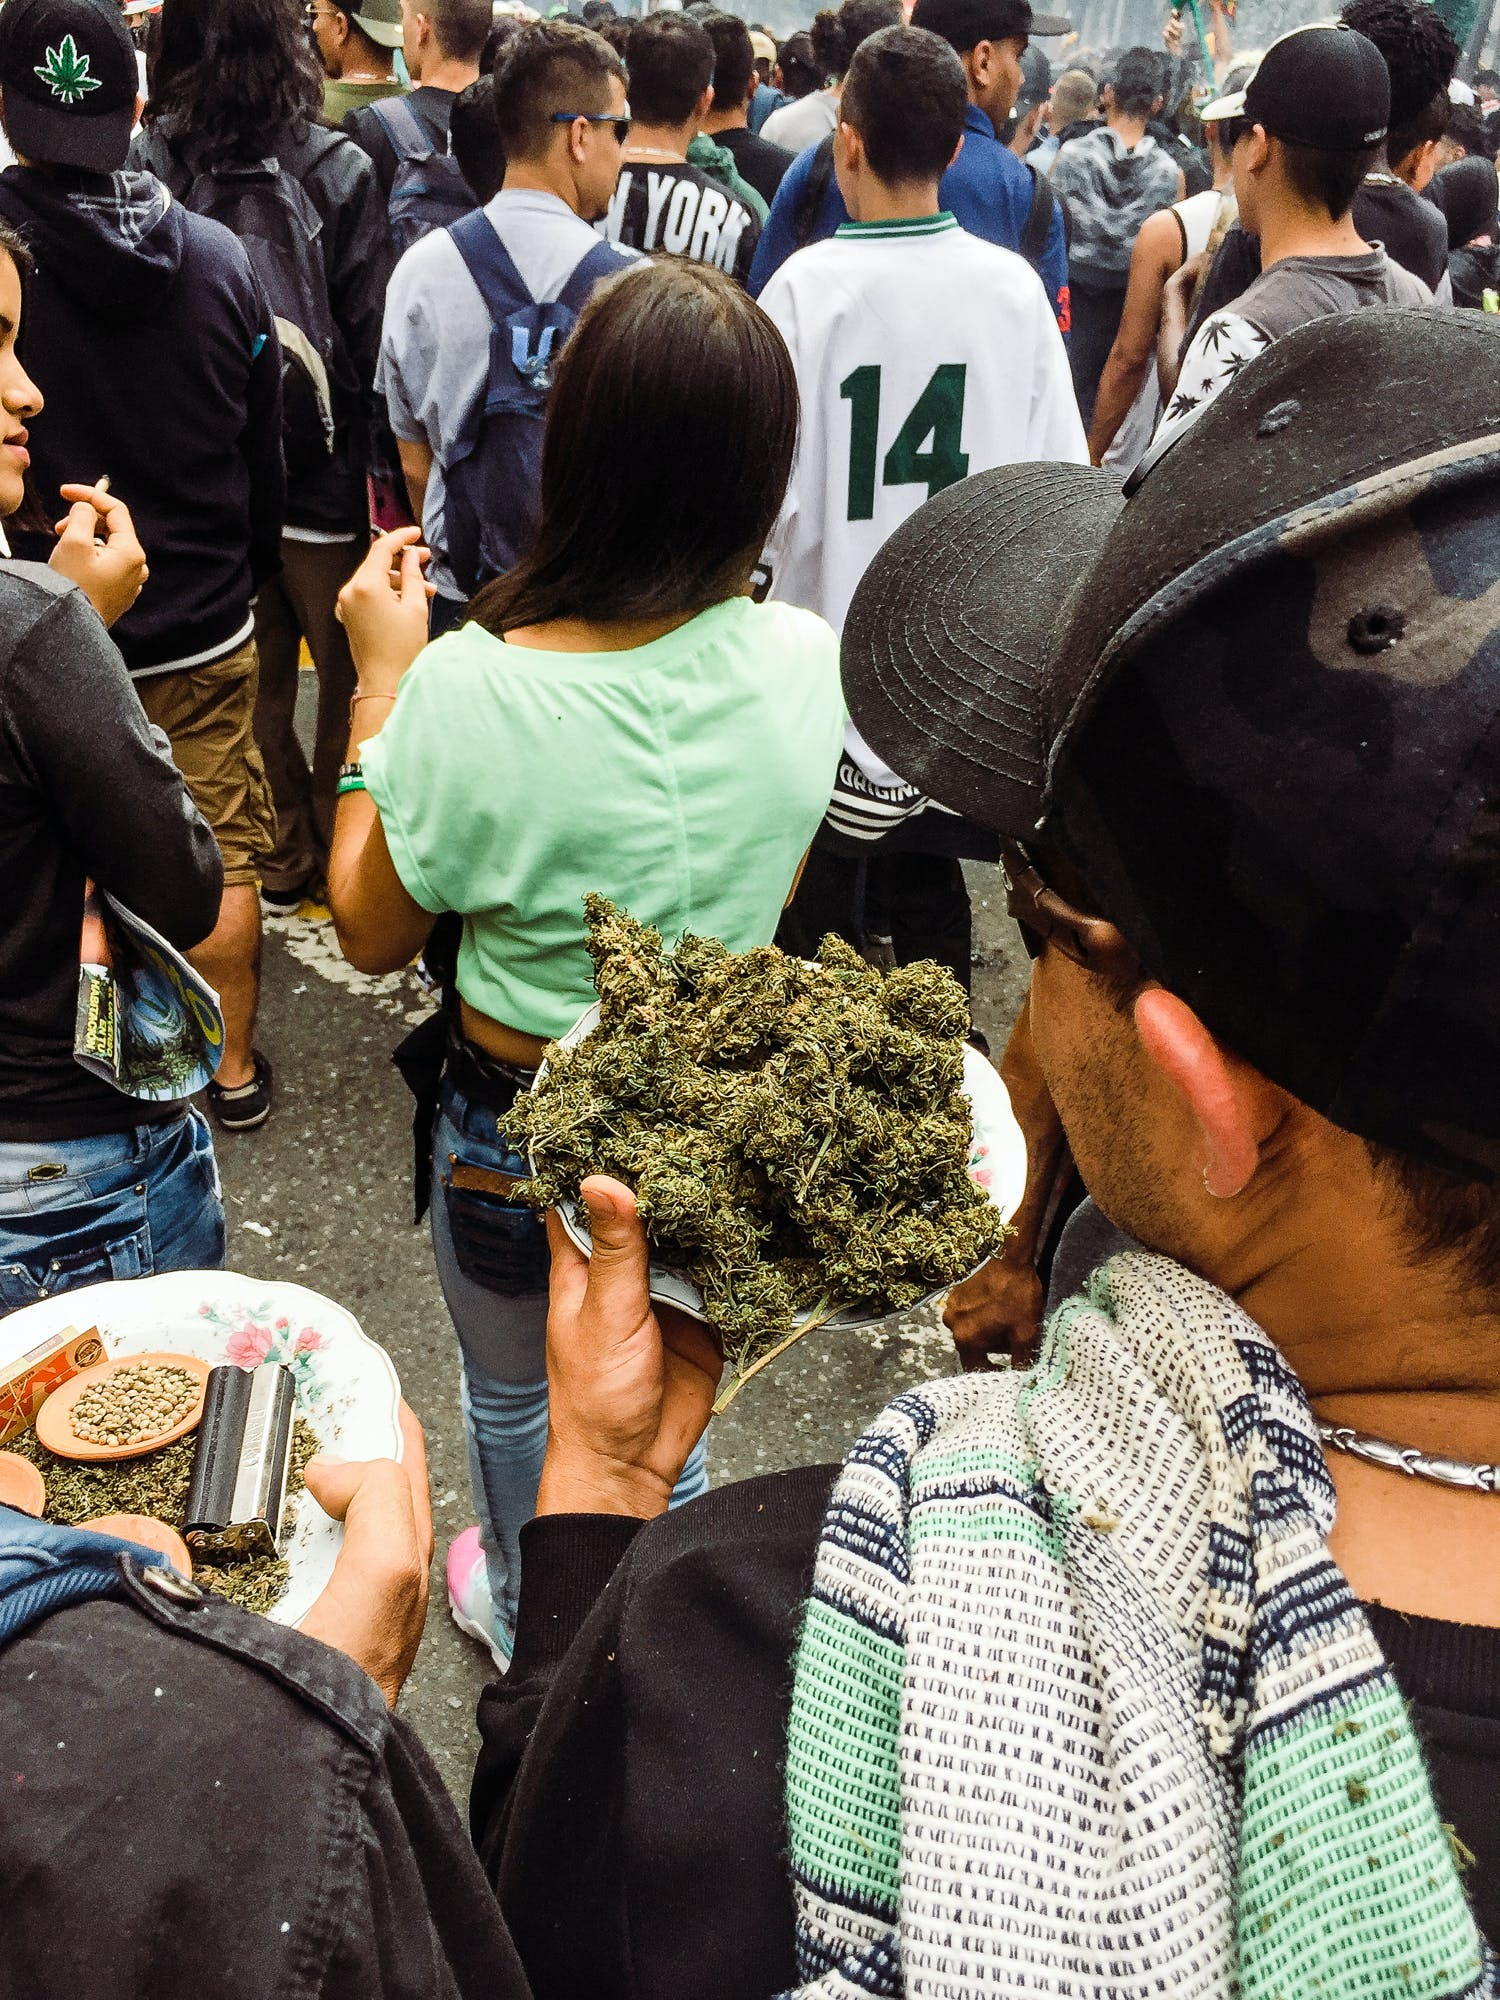 IMG 0576 We marched with 100,000 people in Colombia for cannabis reform